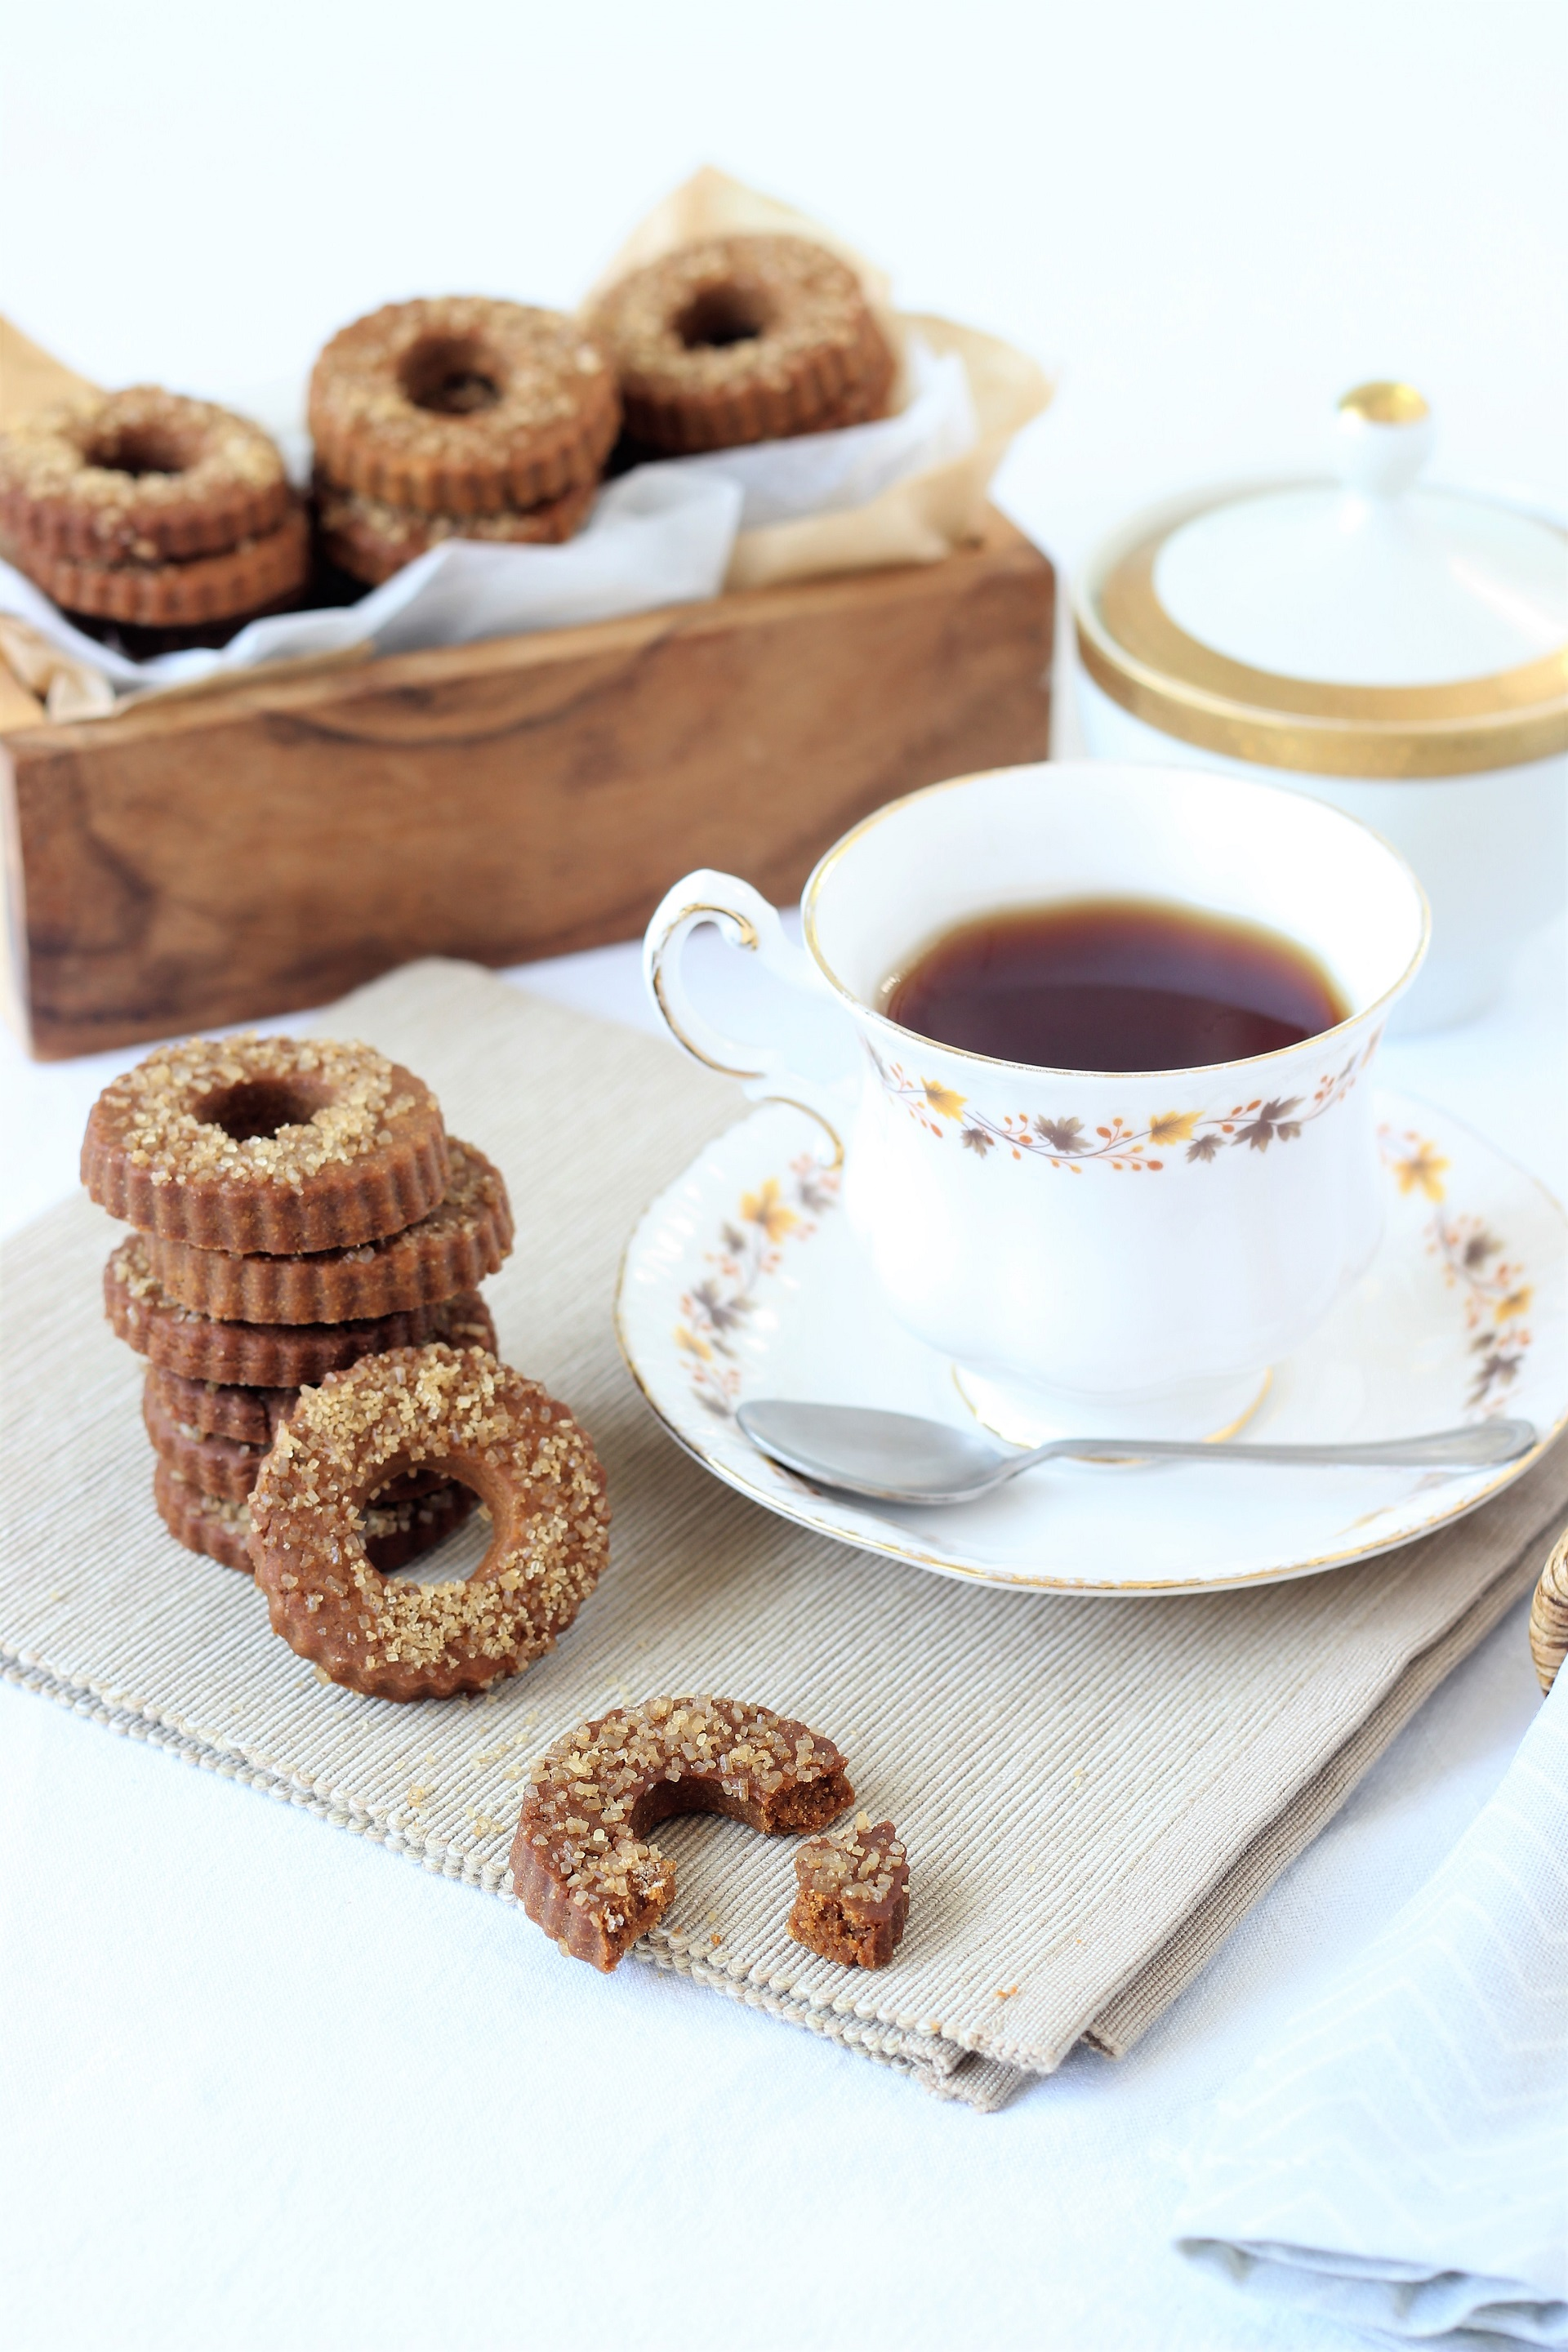 Muscovado cookies and tea